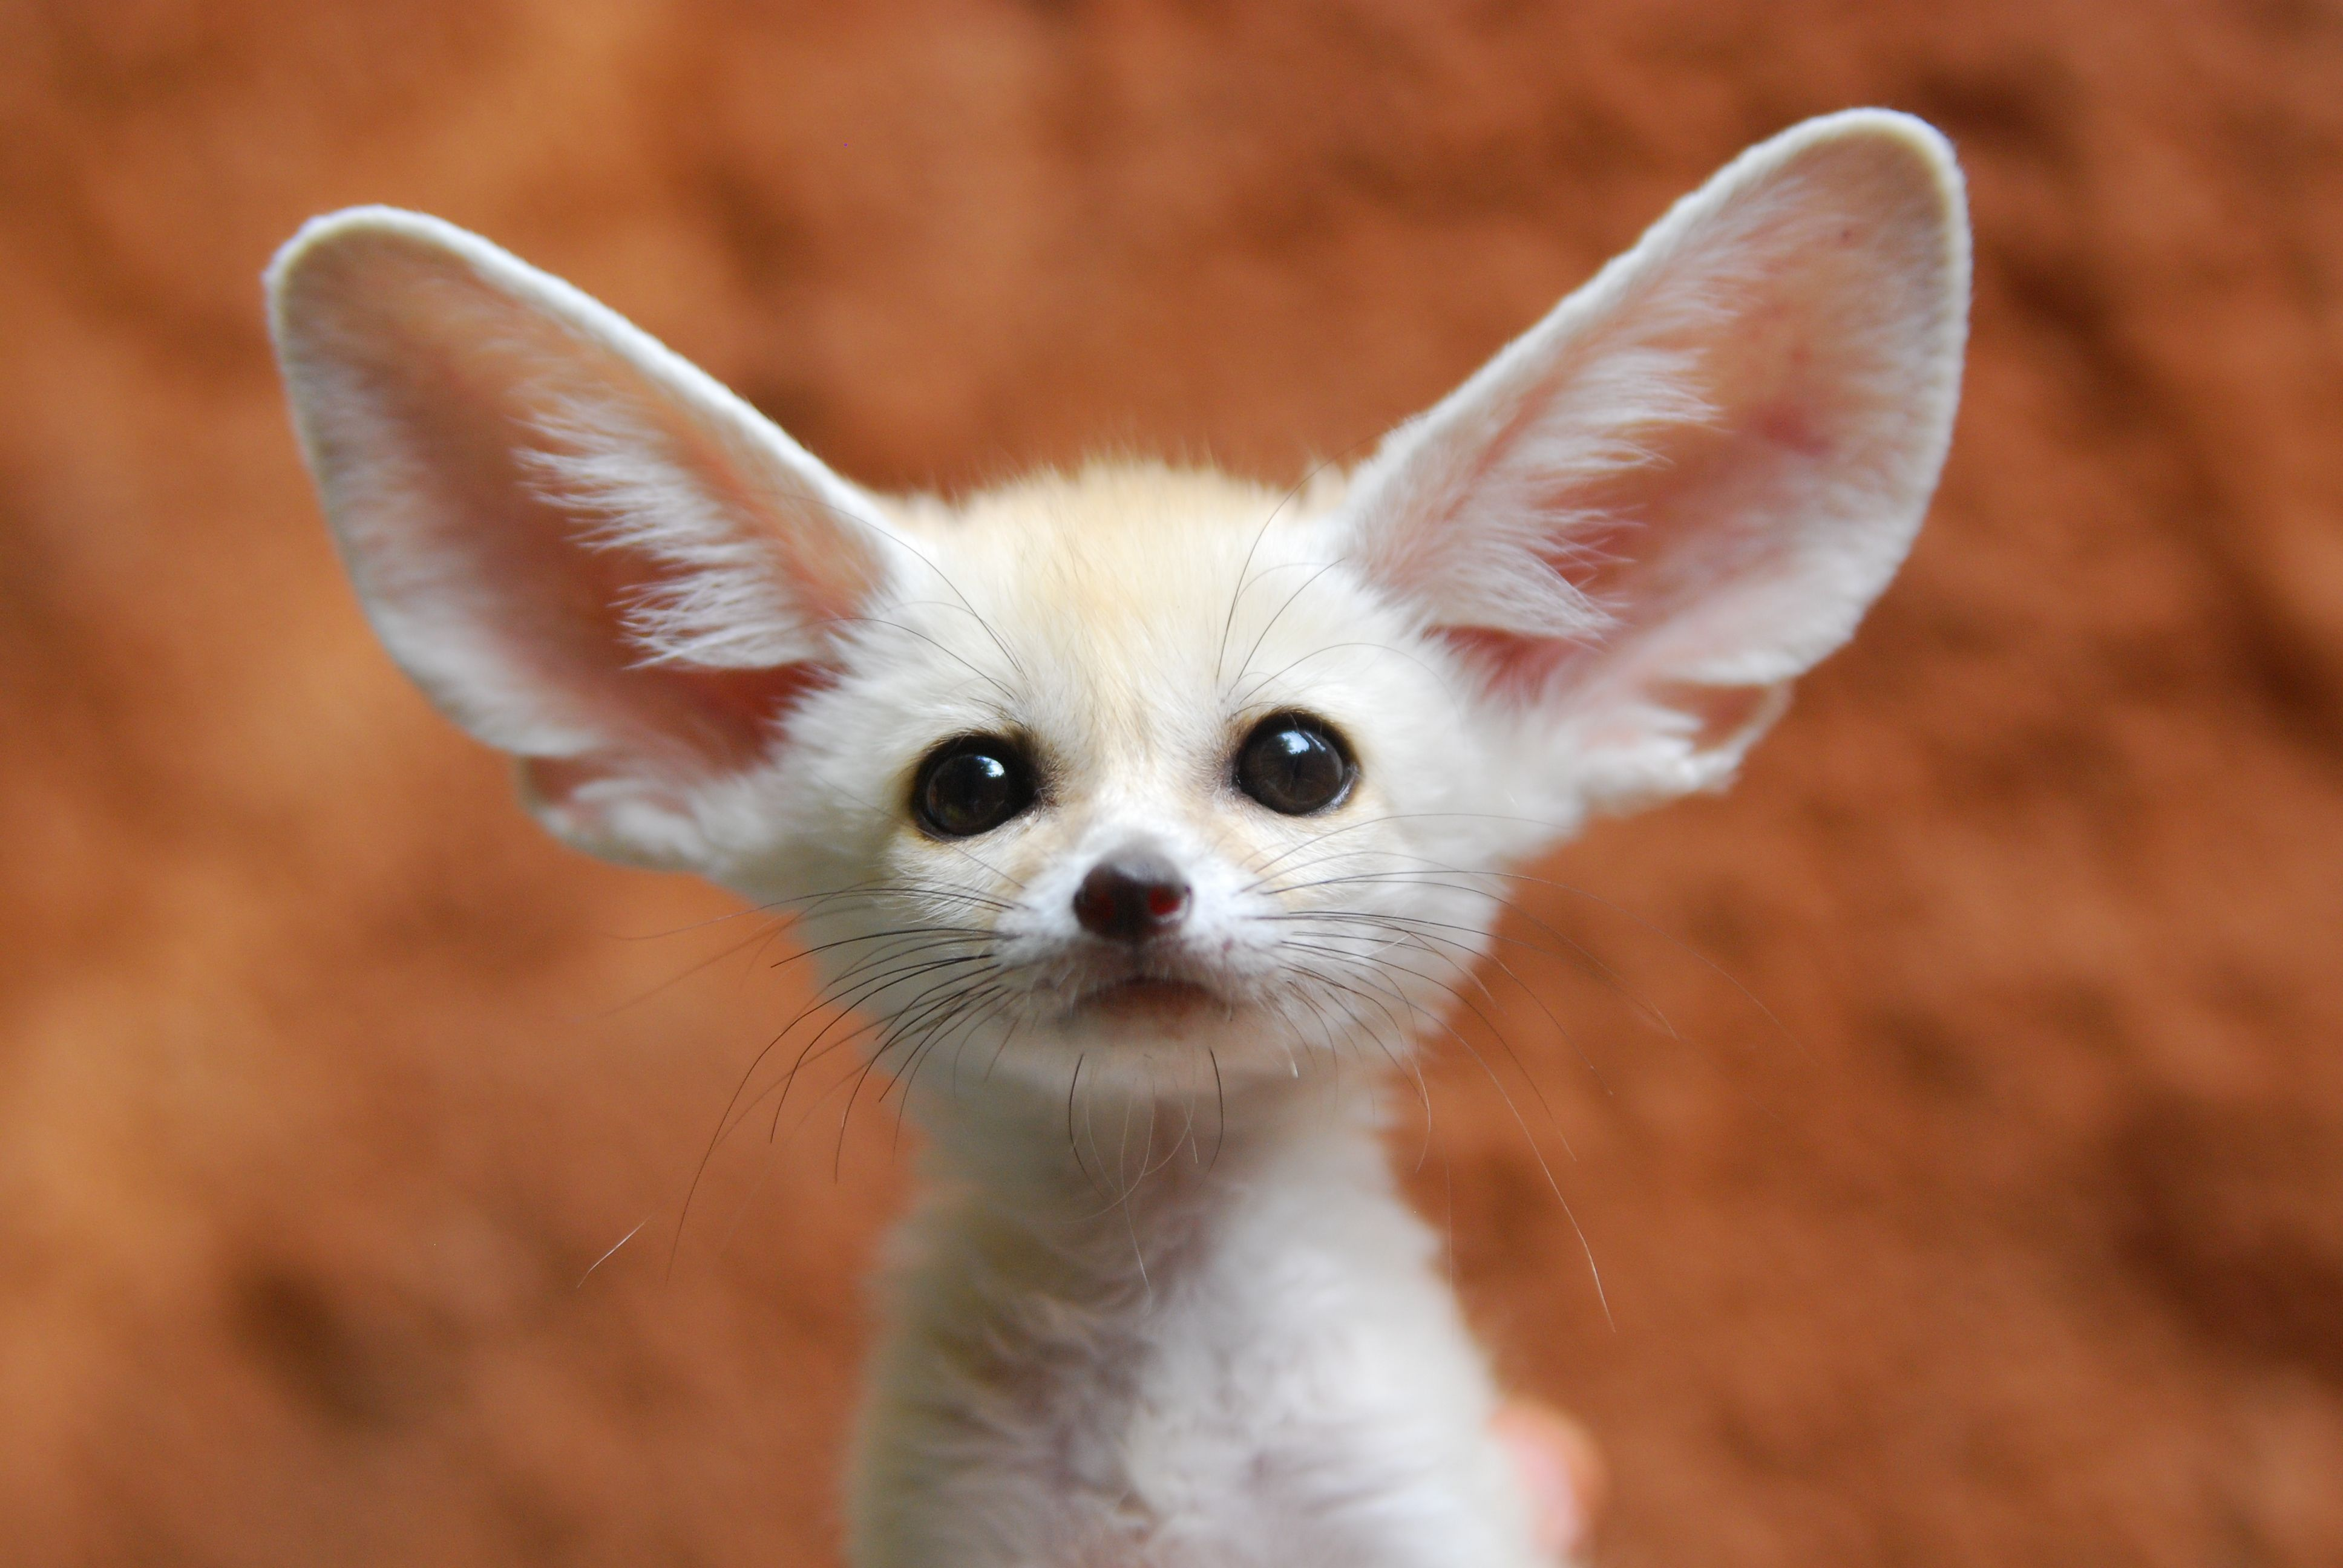 Keeping And Caring For Fennec Foxes As Pets Cute Animals Cute Funny Animals Cute Baby Animals